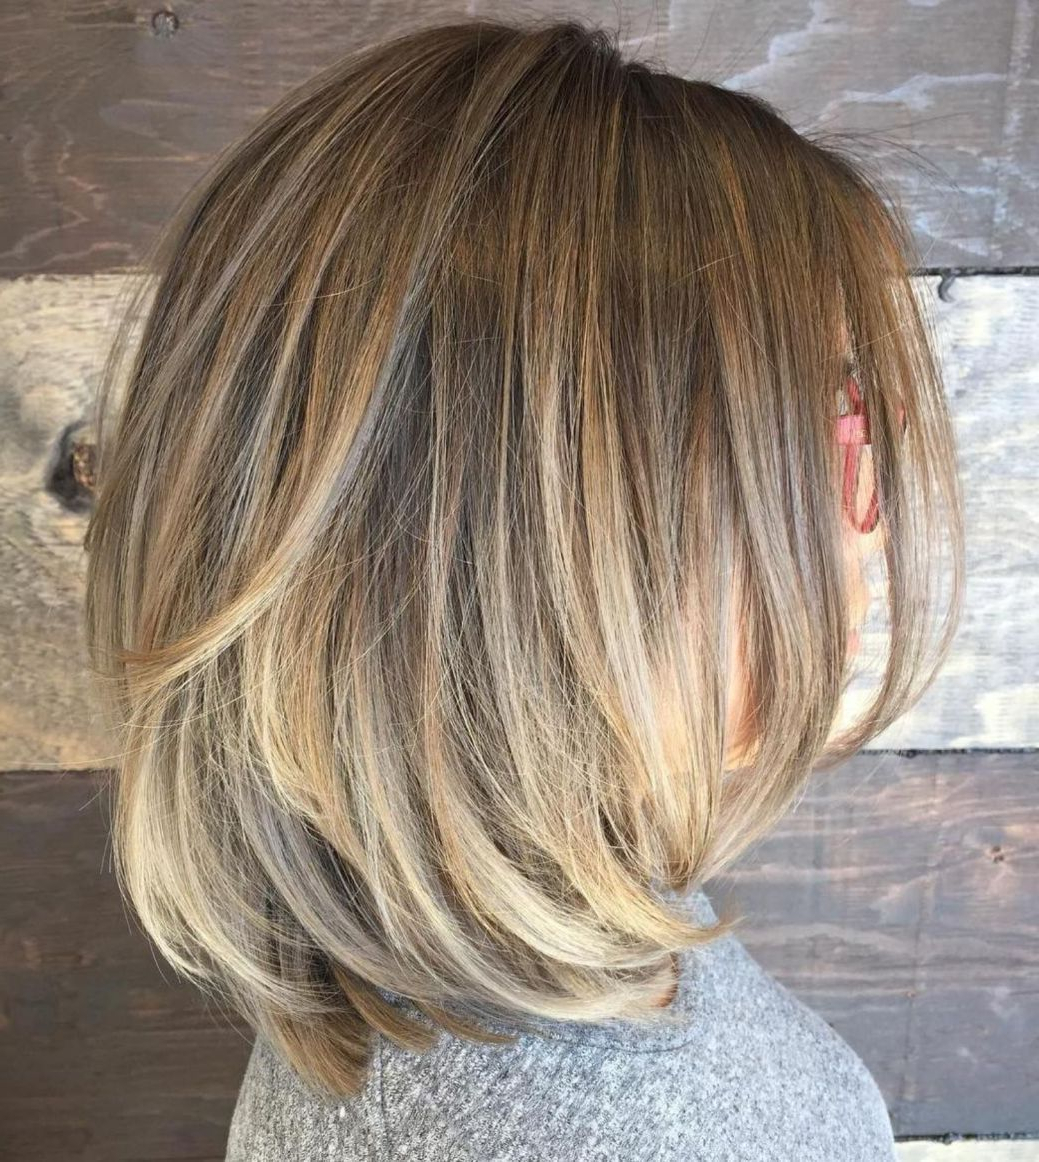 70 Brightest Medium Layered Haircuts To Light You Up In 2019 Within Trendy Thick Feathered Blonde Lob Hairstyles (Gallery 16 of 20)